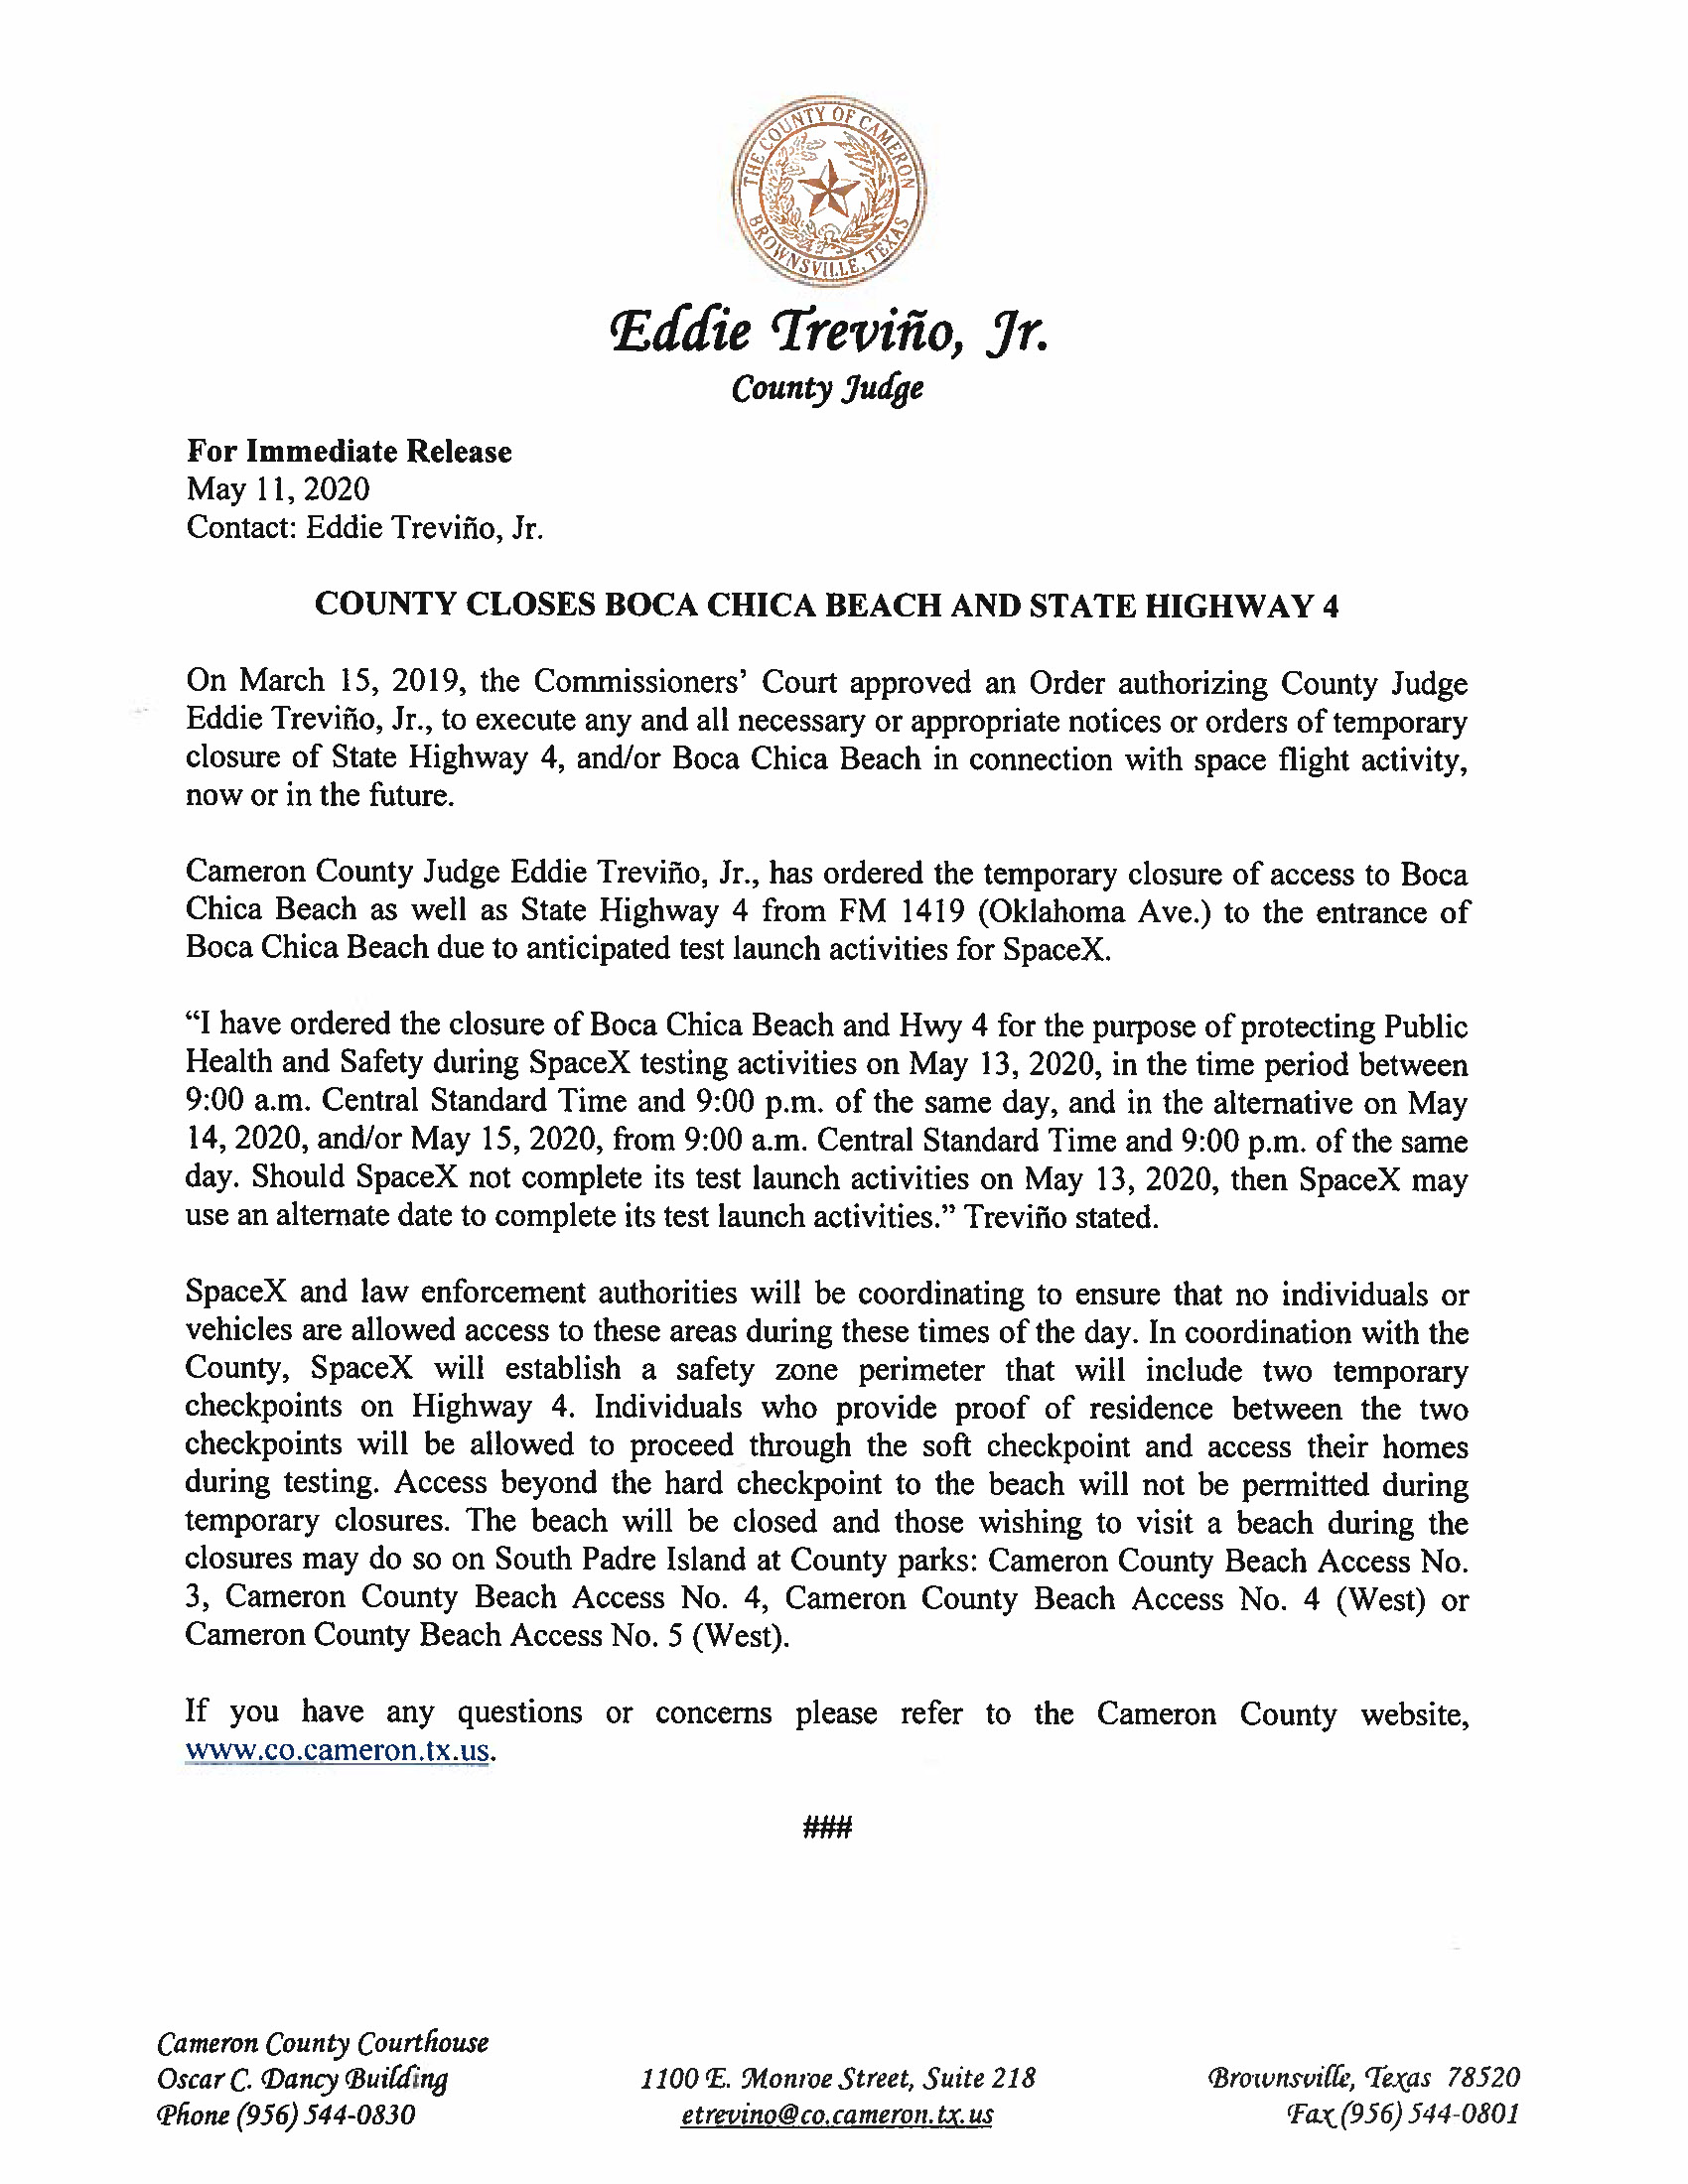 Press Release In English And Spanish.05.13.20 Page 1